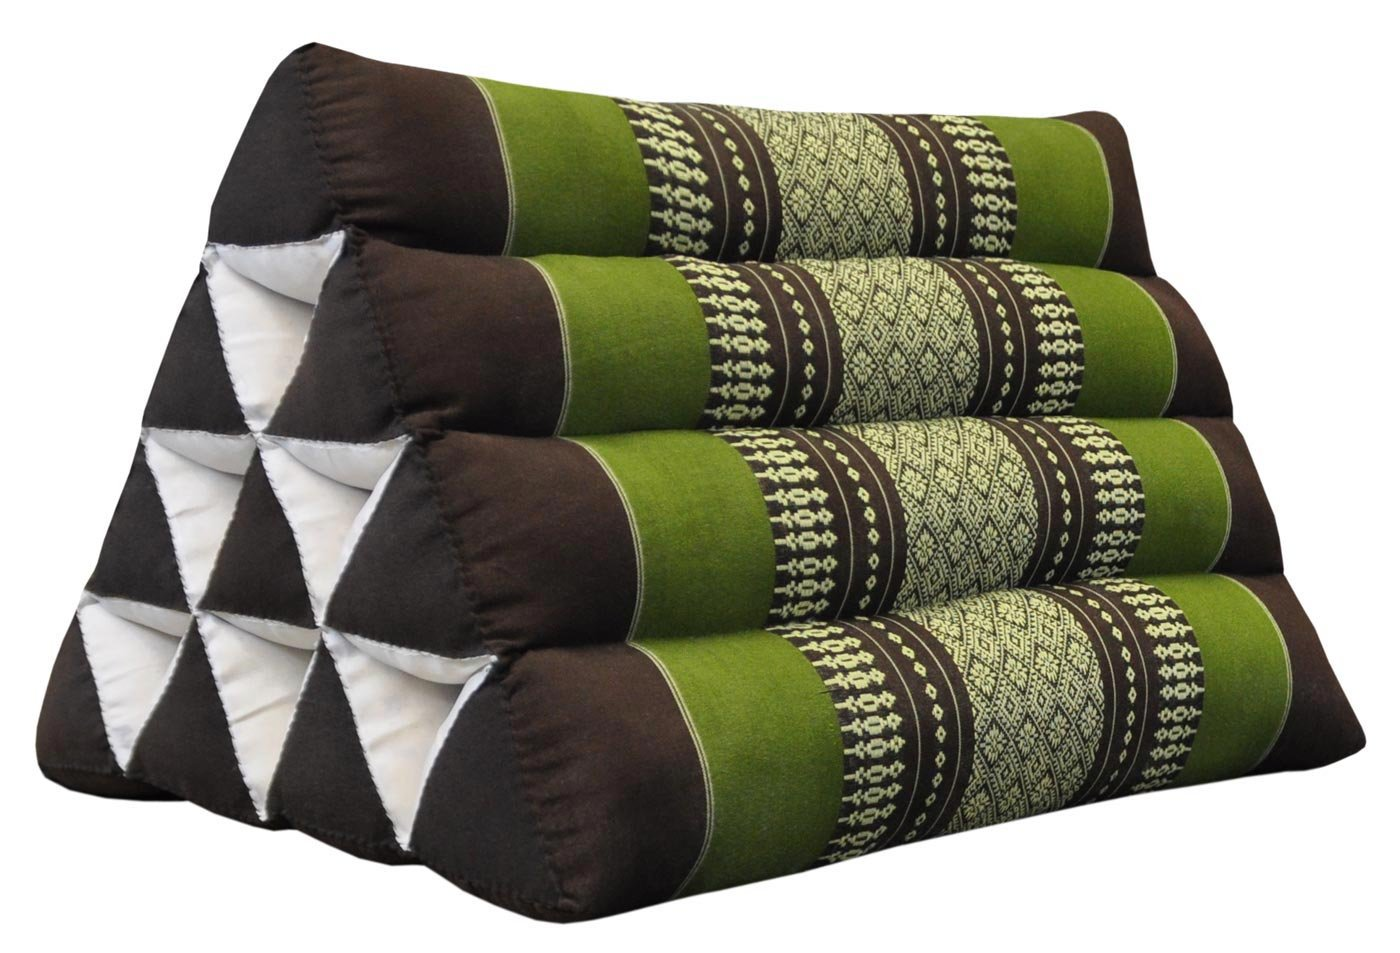 Thai triangular cushion, brown/green, relaxation, beach, kapok, made in Thailand. (82000) by Wilai GmbH